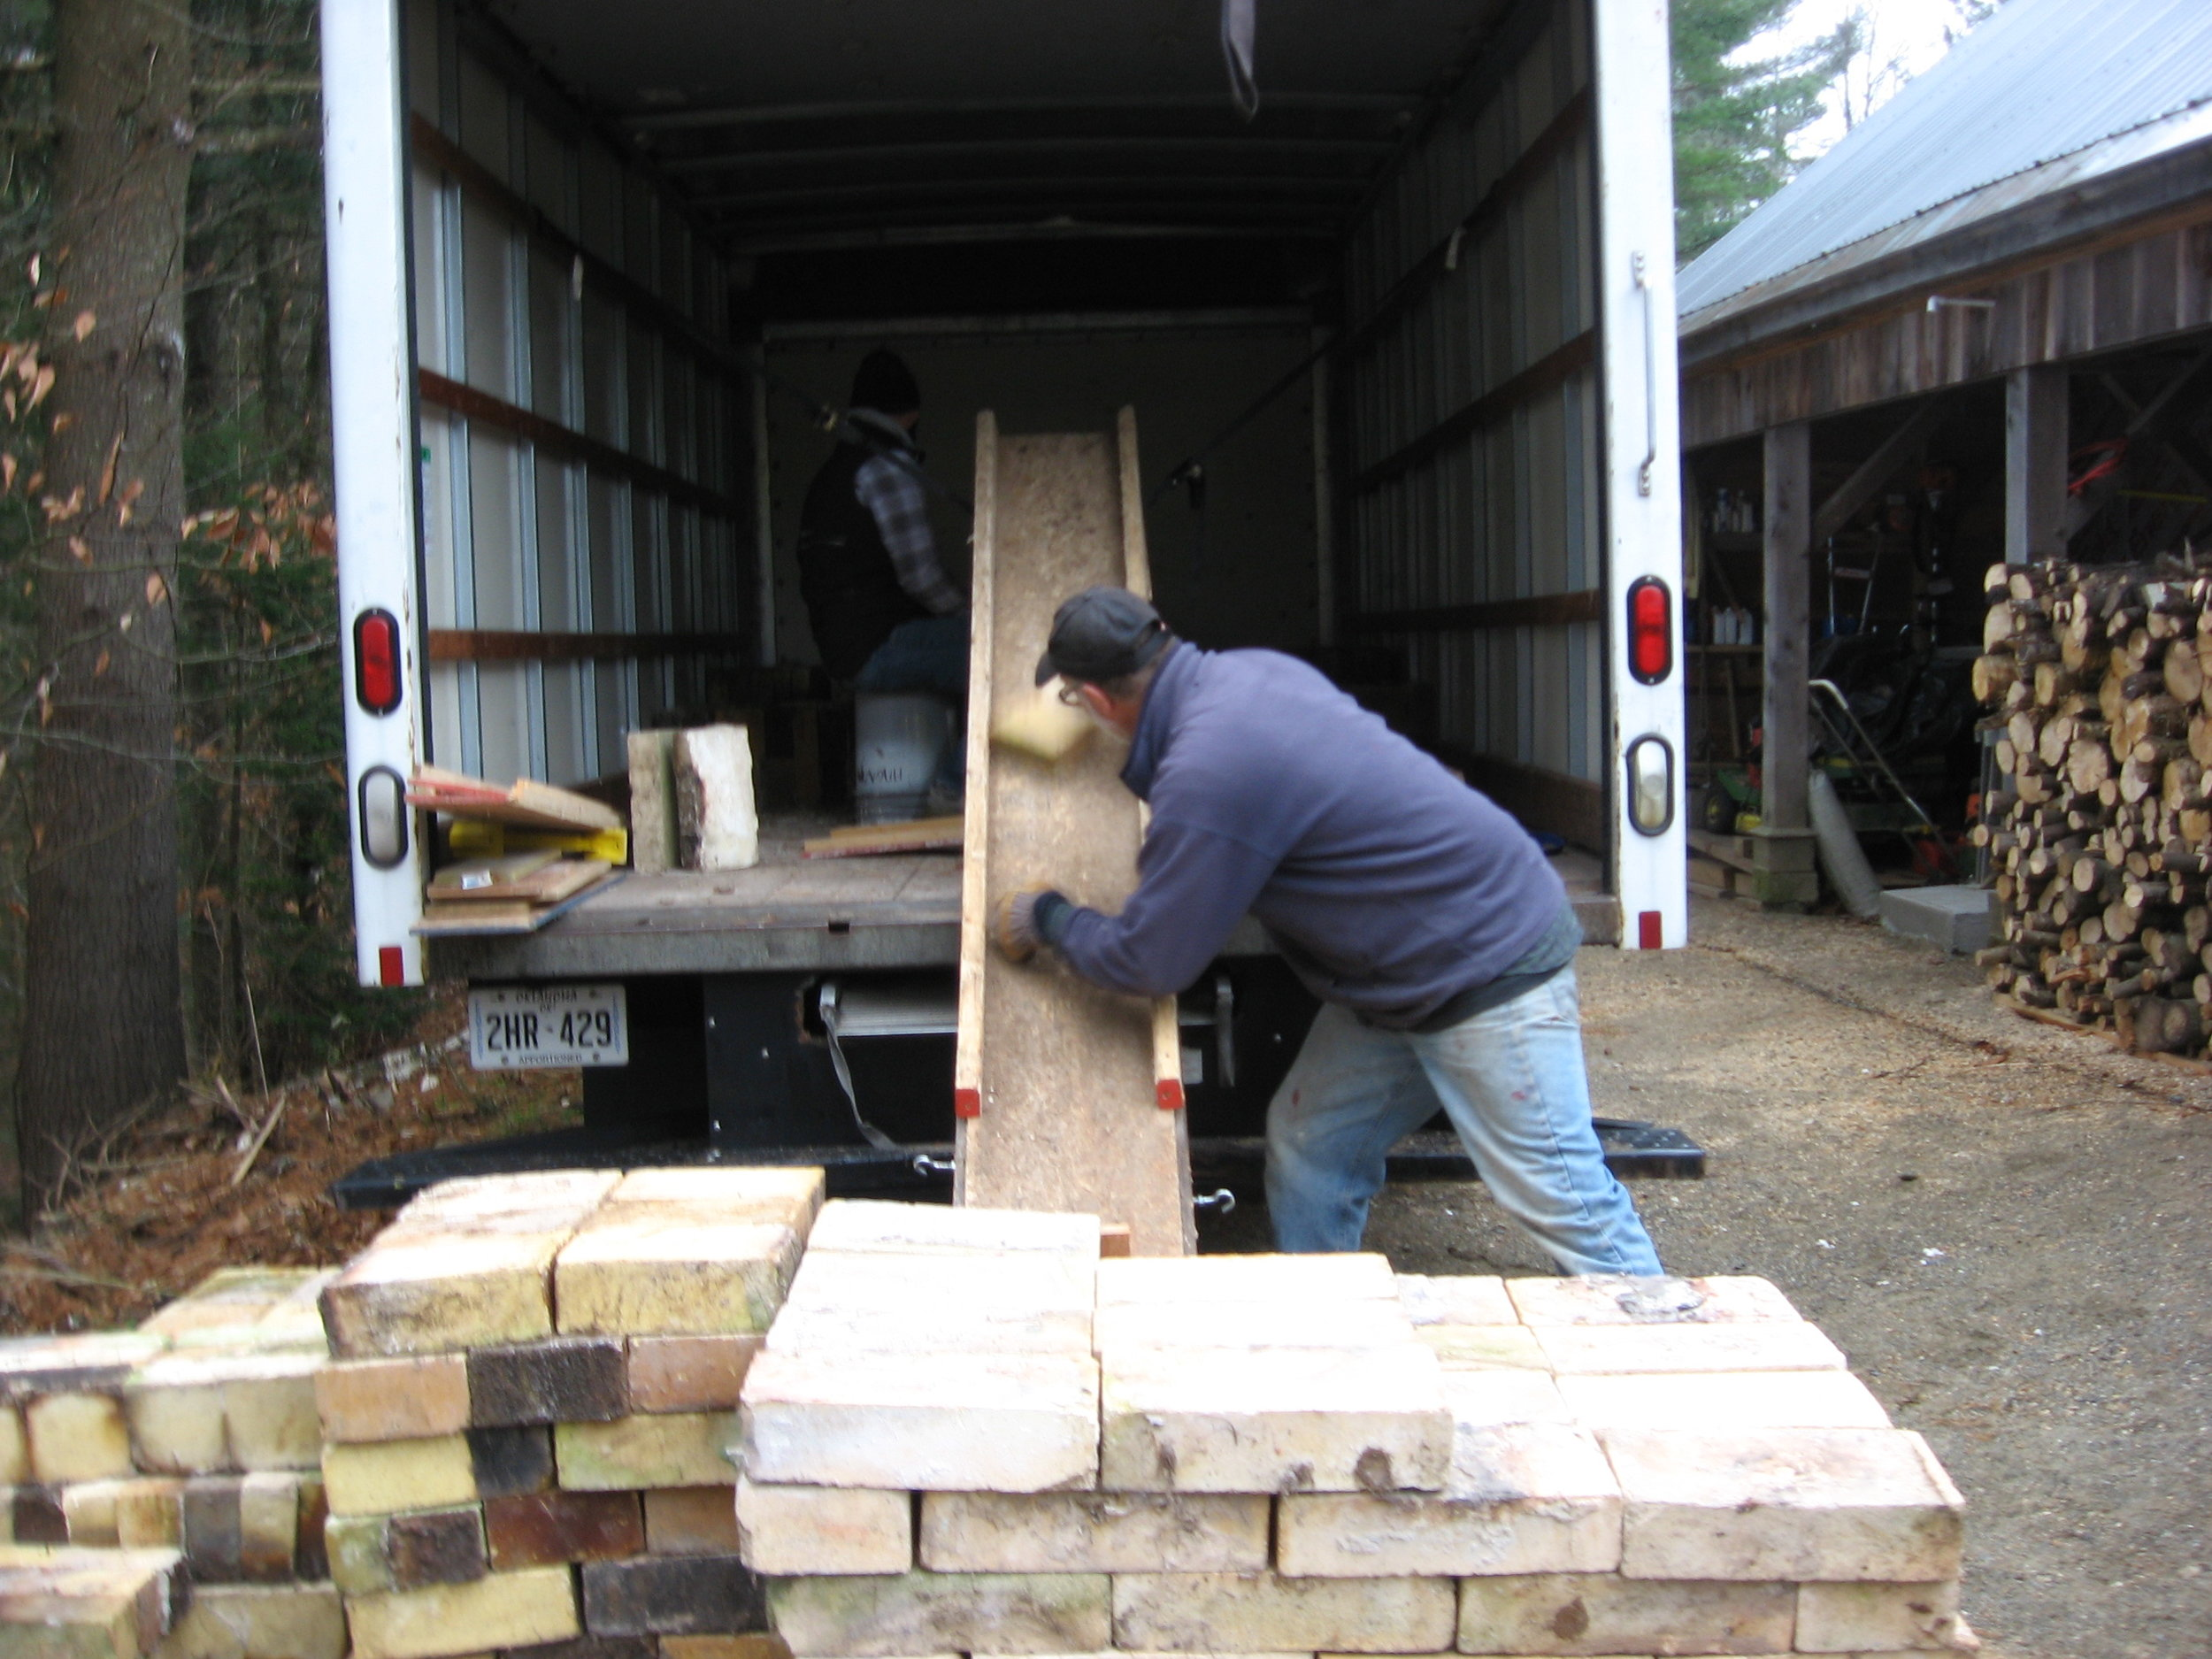 Unloading the bricks back home in Vermont.